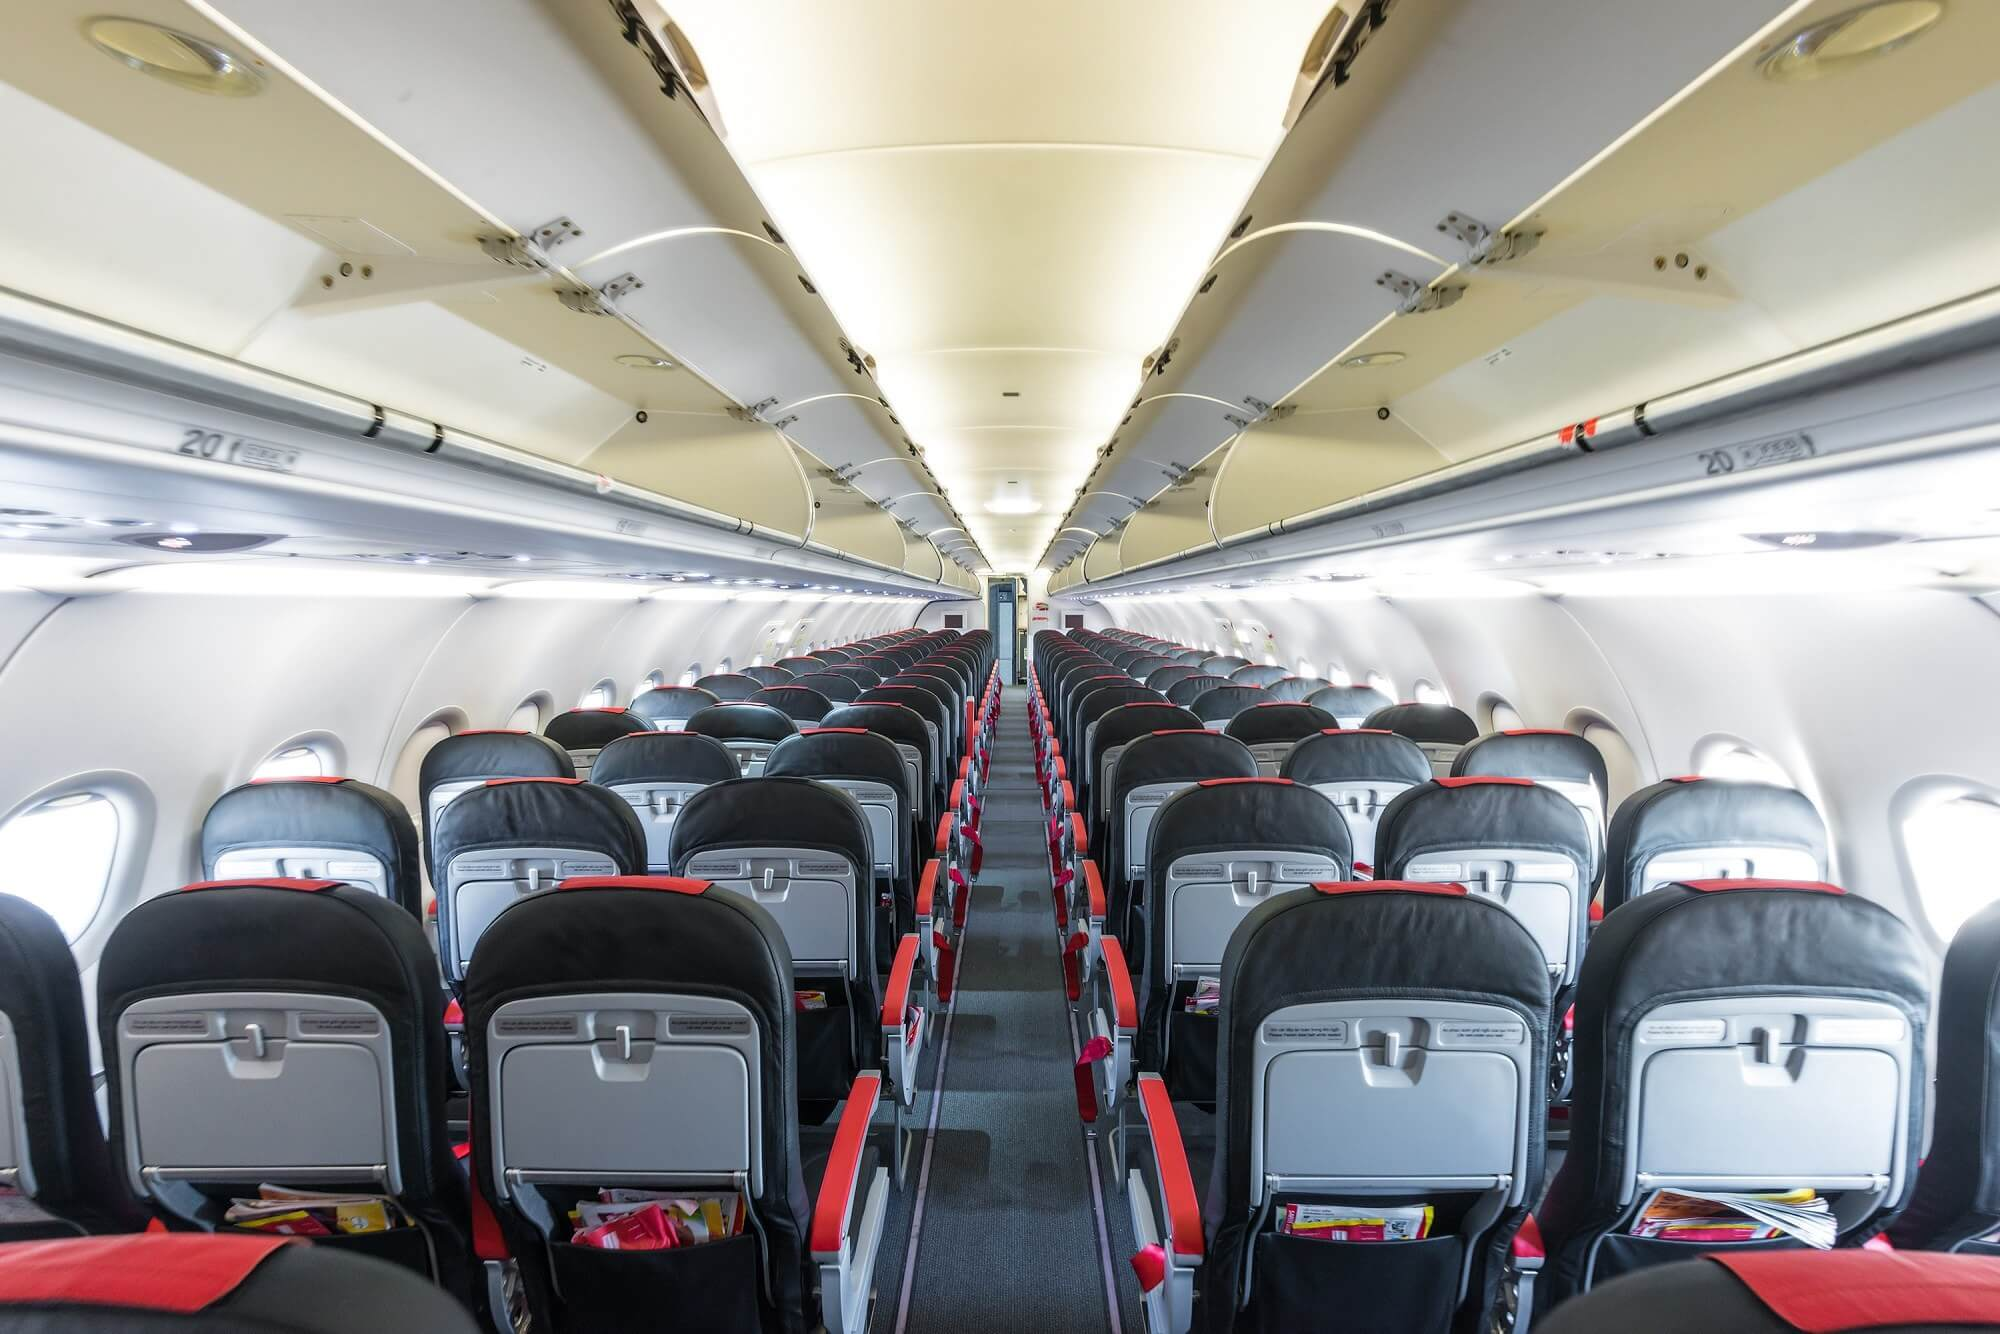 Airlines are flying empty planes because of the coronavirus